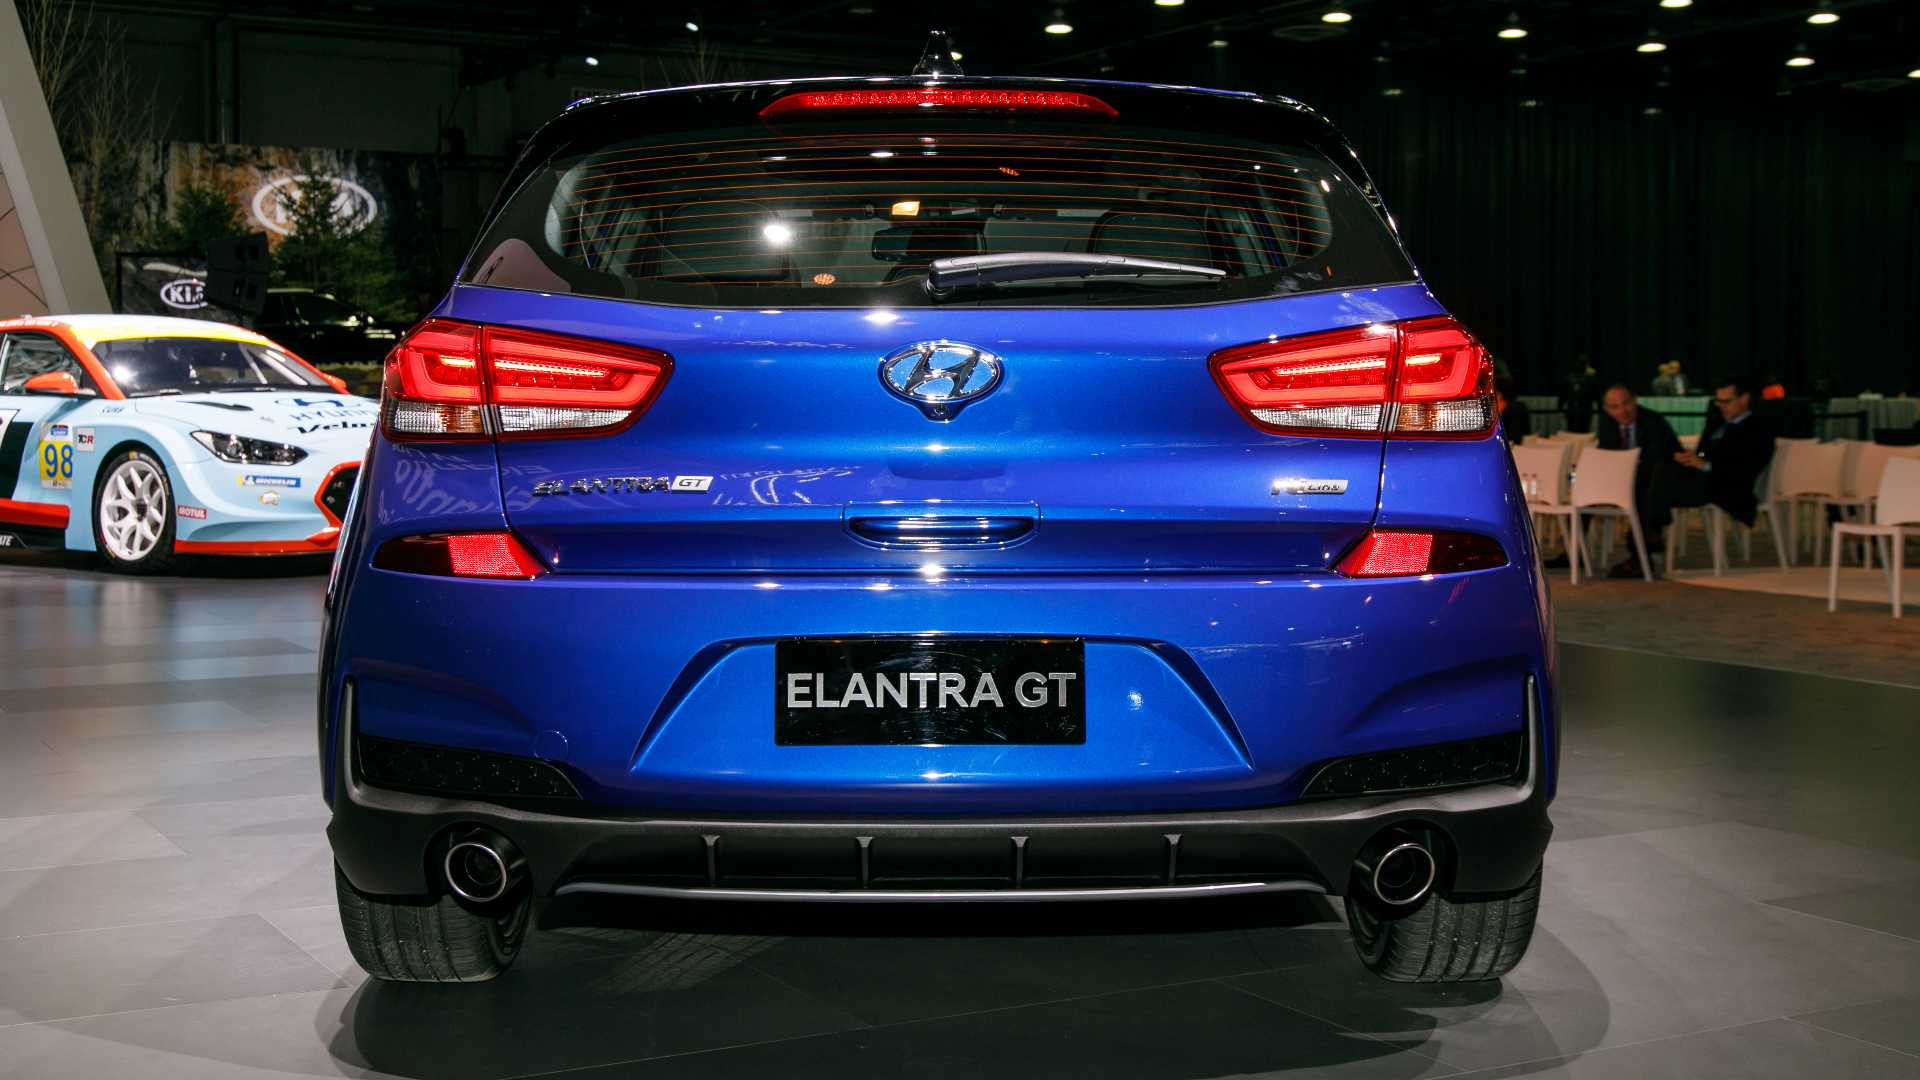 32 New 2020 Hyundai Elantra Gt Price And Review